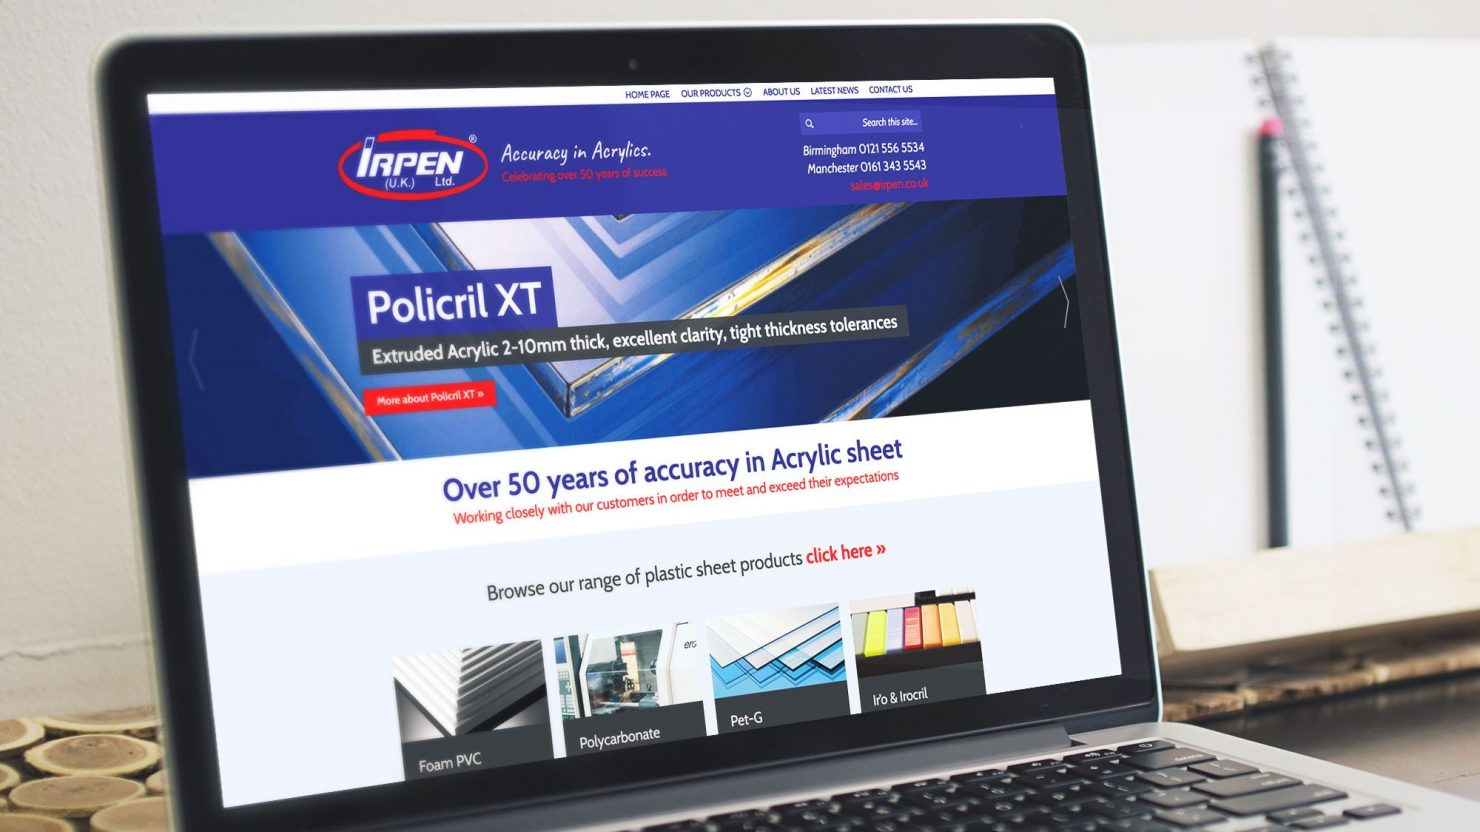 responsive web design and development on macbook for irpen uk ltd